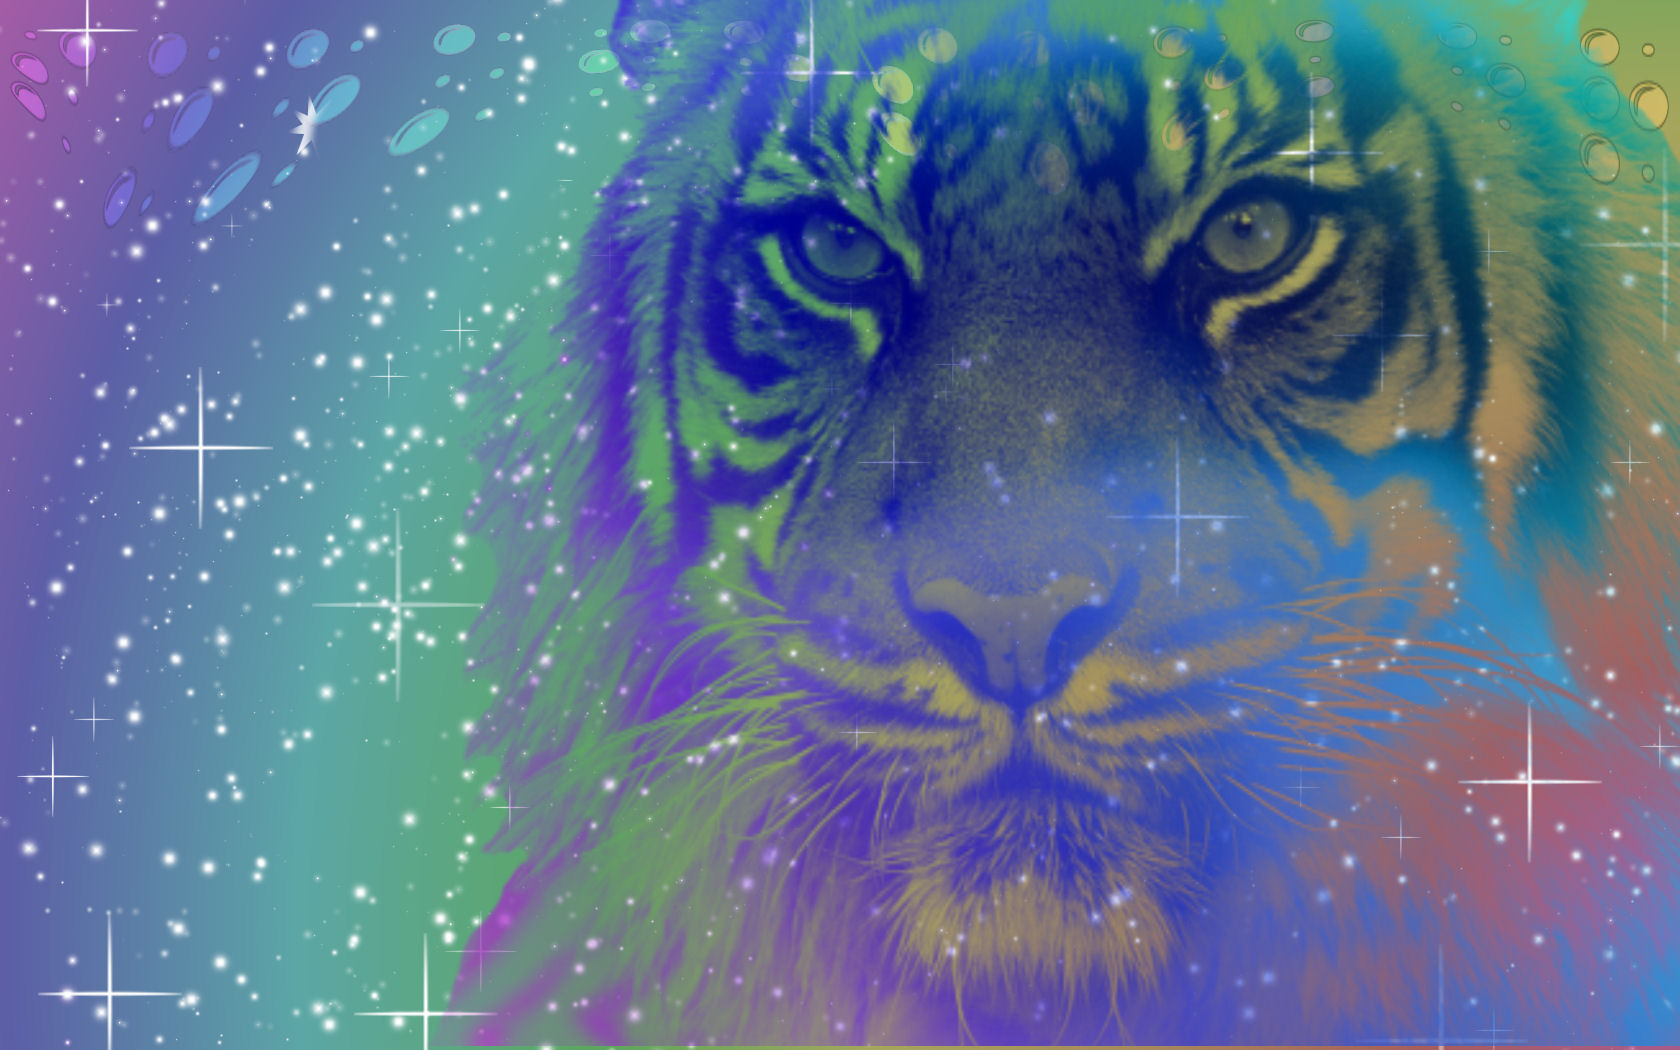 cool tiger backgrounds tumblr